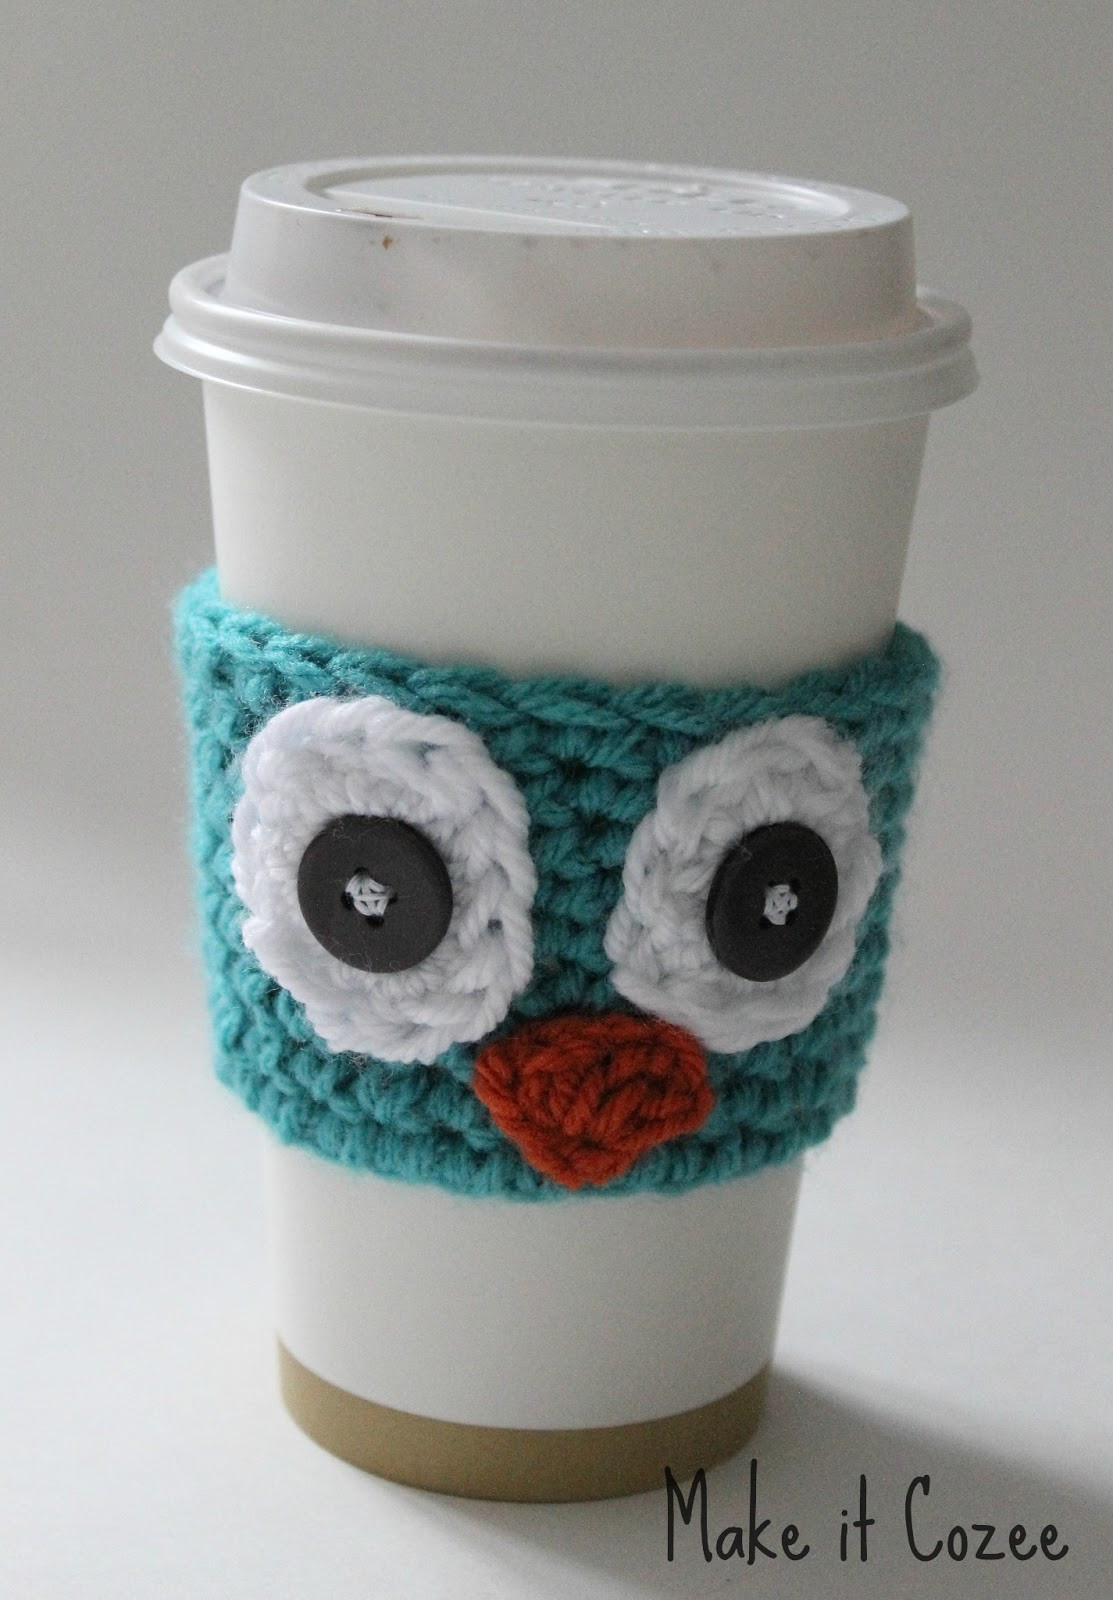 Crochet Coffee Cup Cozy Inspirational Make It Cozee Crochet Owl Coffee Cozy Of Crochet Coffee Cup Cozy Elegant Wooftastic Puppy Crochet Coffee Cozy